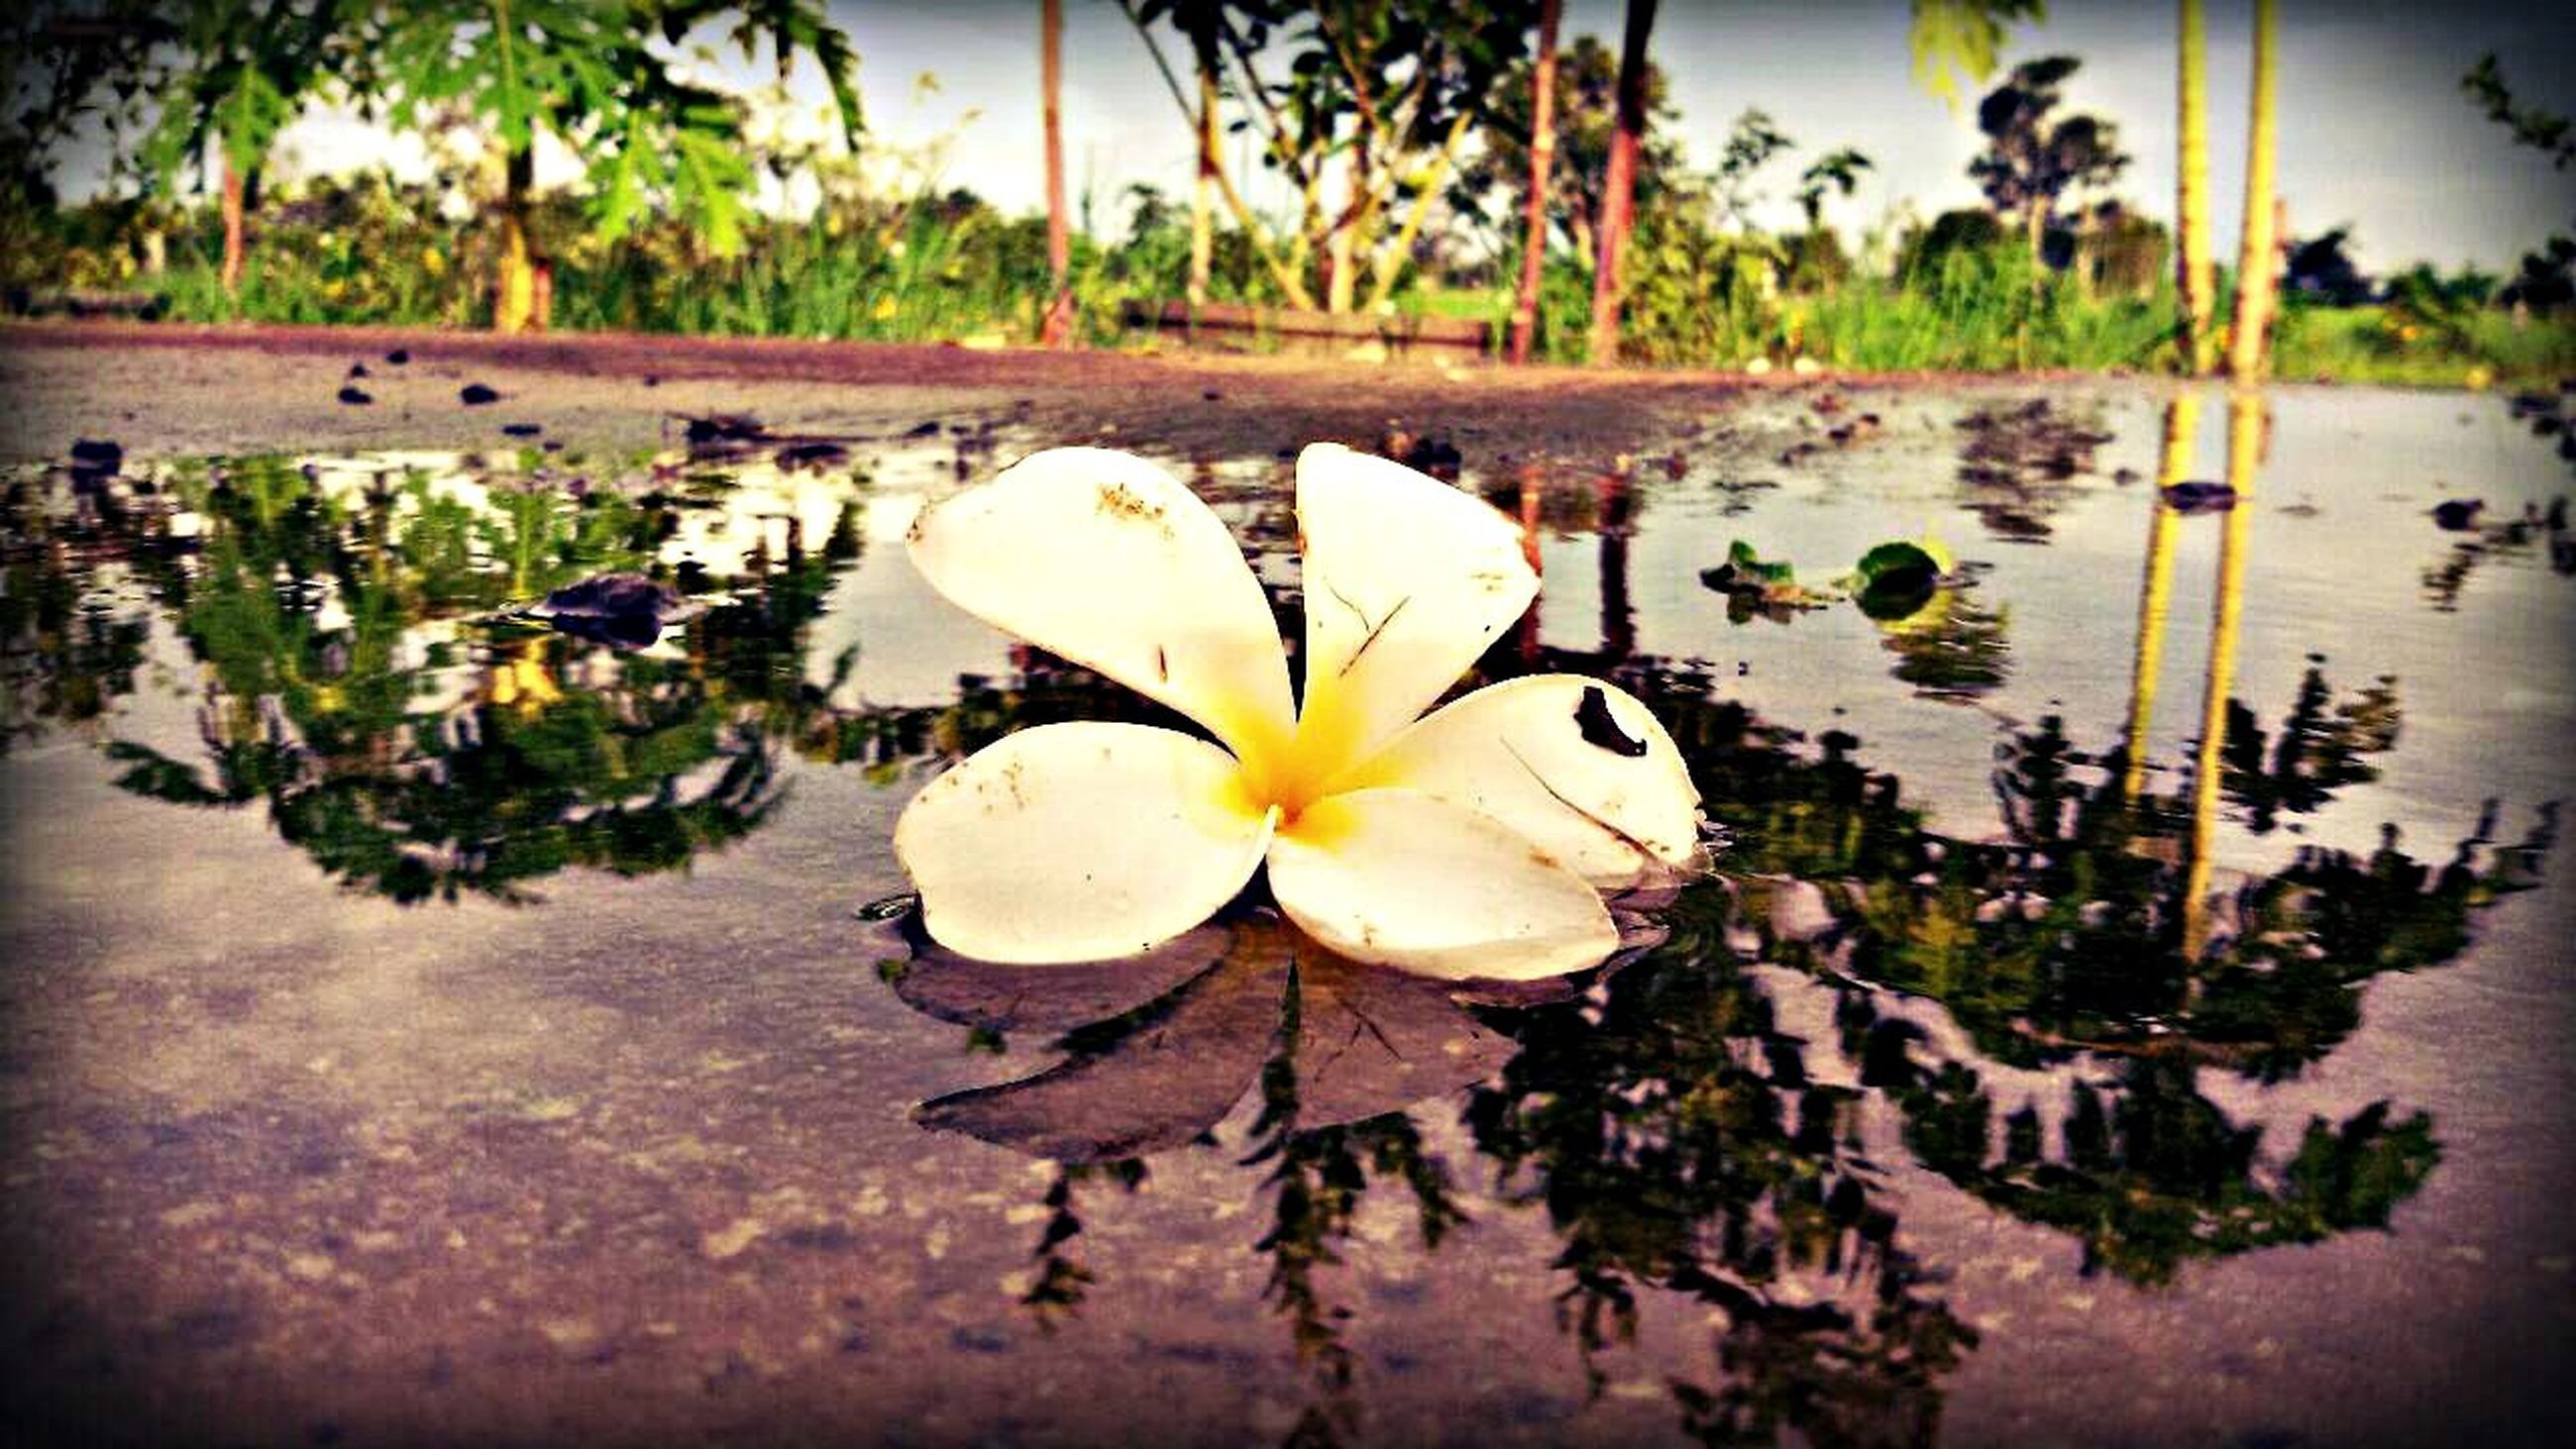 flower, freshness, flower head, fragility, petal, growth, water lily, plant, water, leaf, single flower, beauty in nature, nature, floating on water, pond, close-up, white color, high angle view, stem, cactus